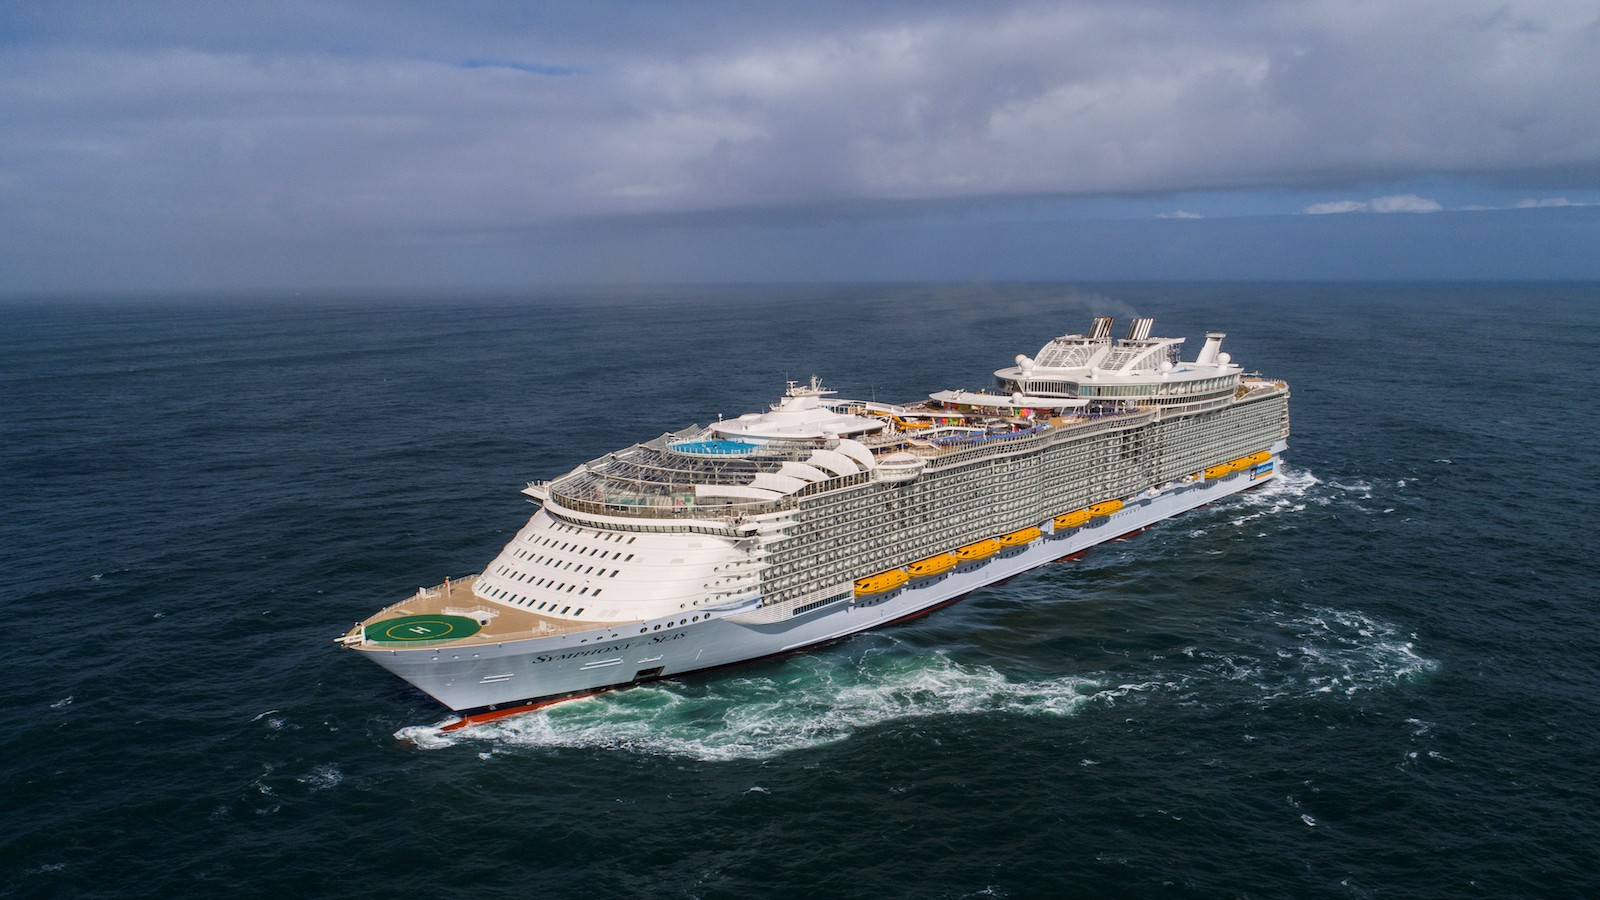 Cruise ship food supplies: Amazing statistics on how much passengers eat